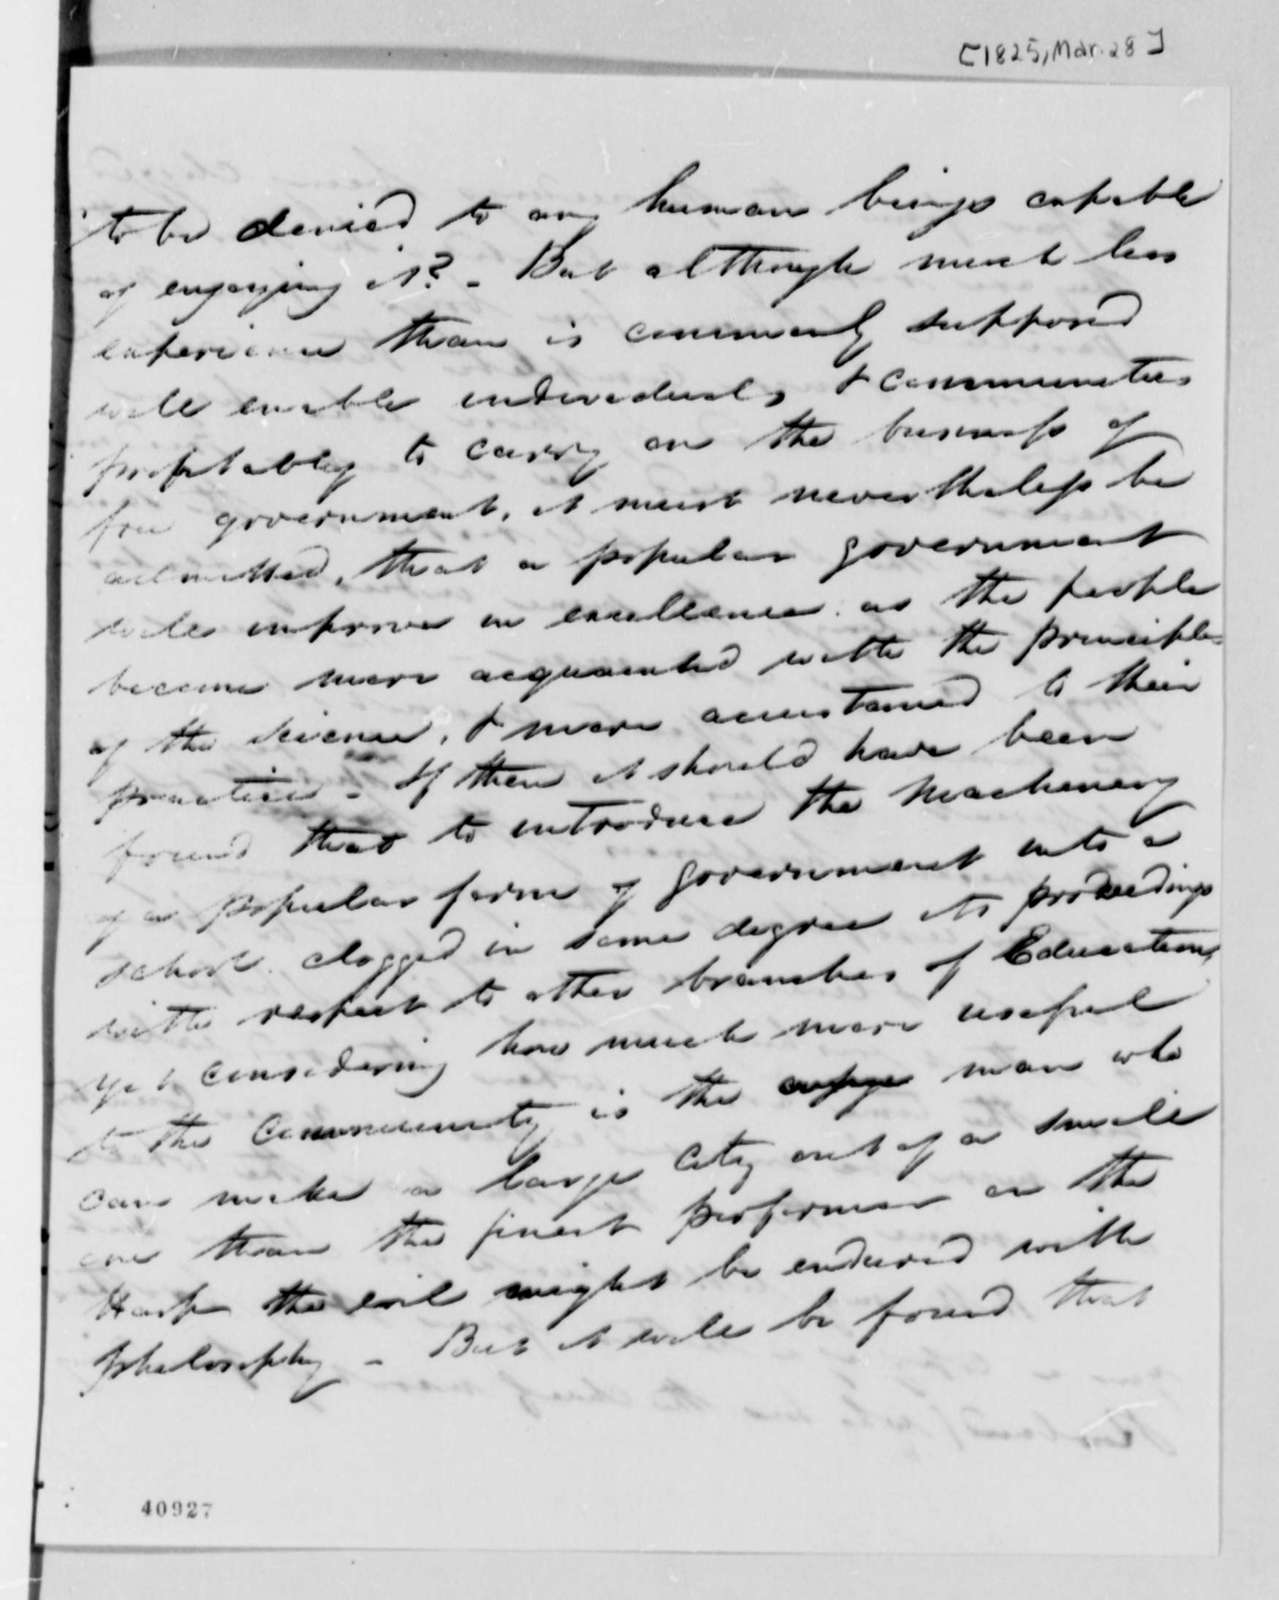 M. D. Hill to Thomas Jefferson, March 28, 1825